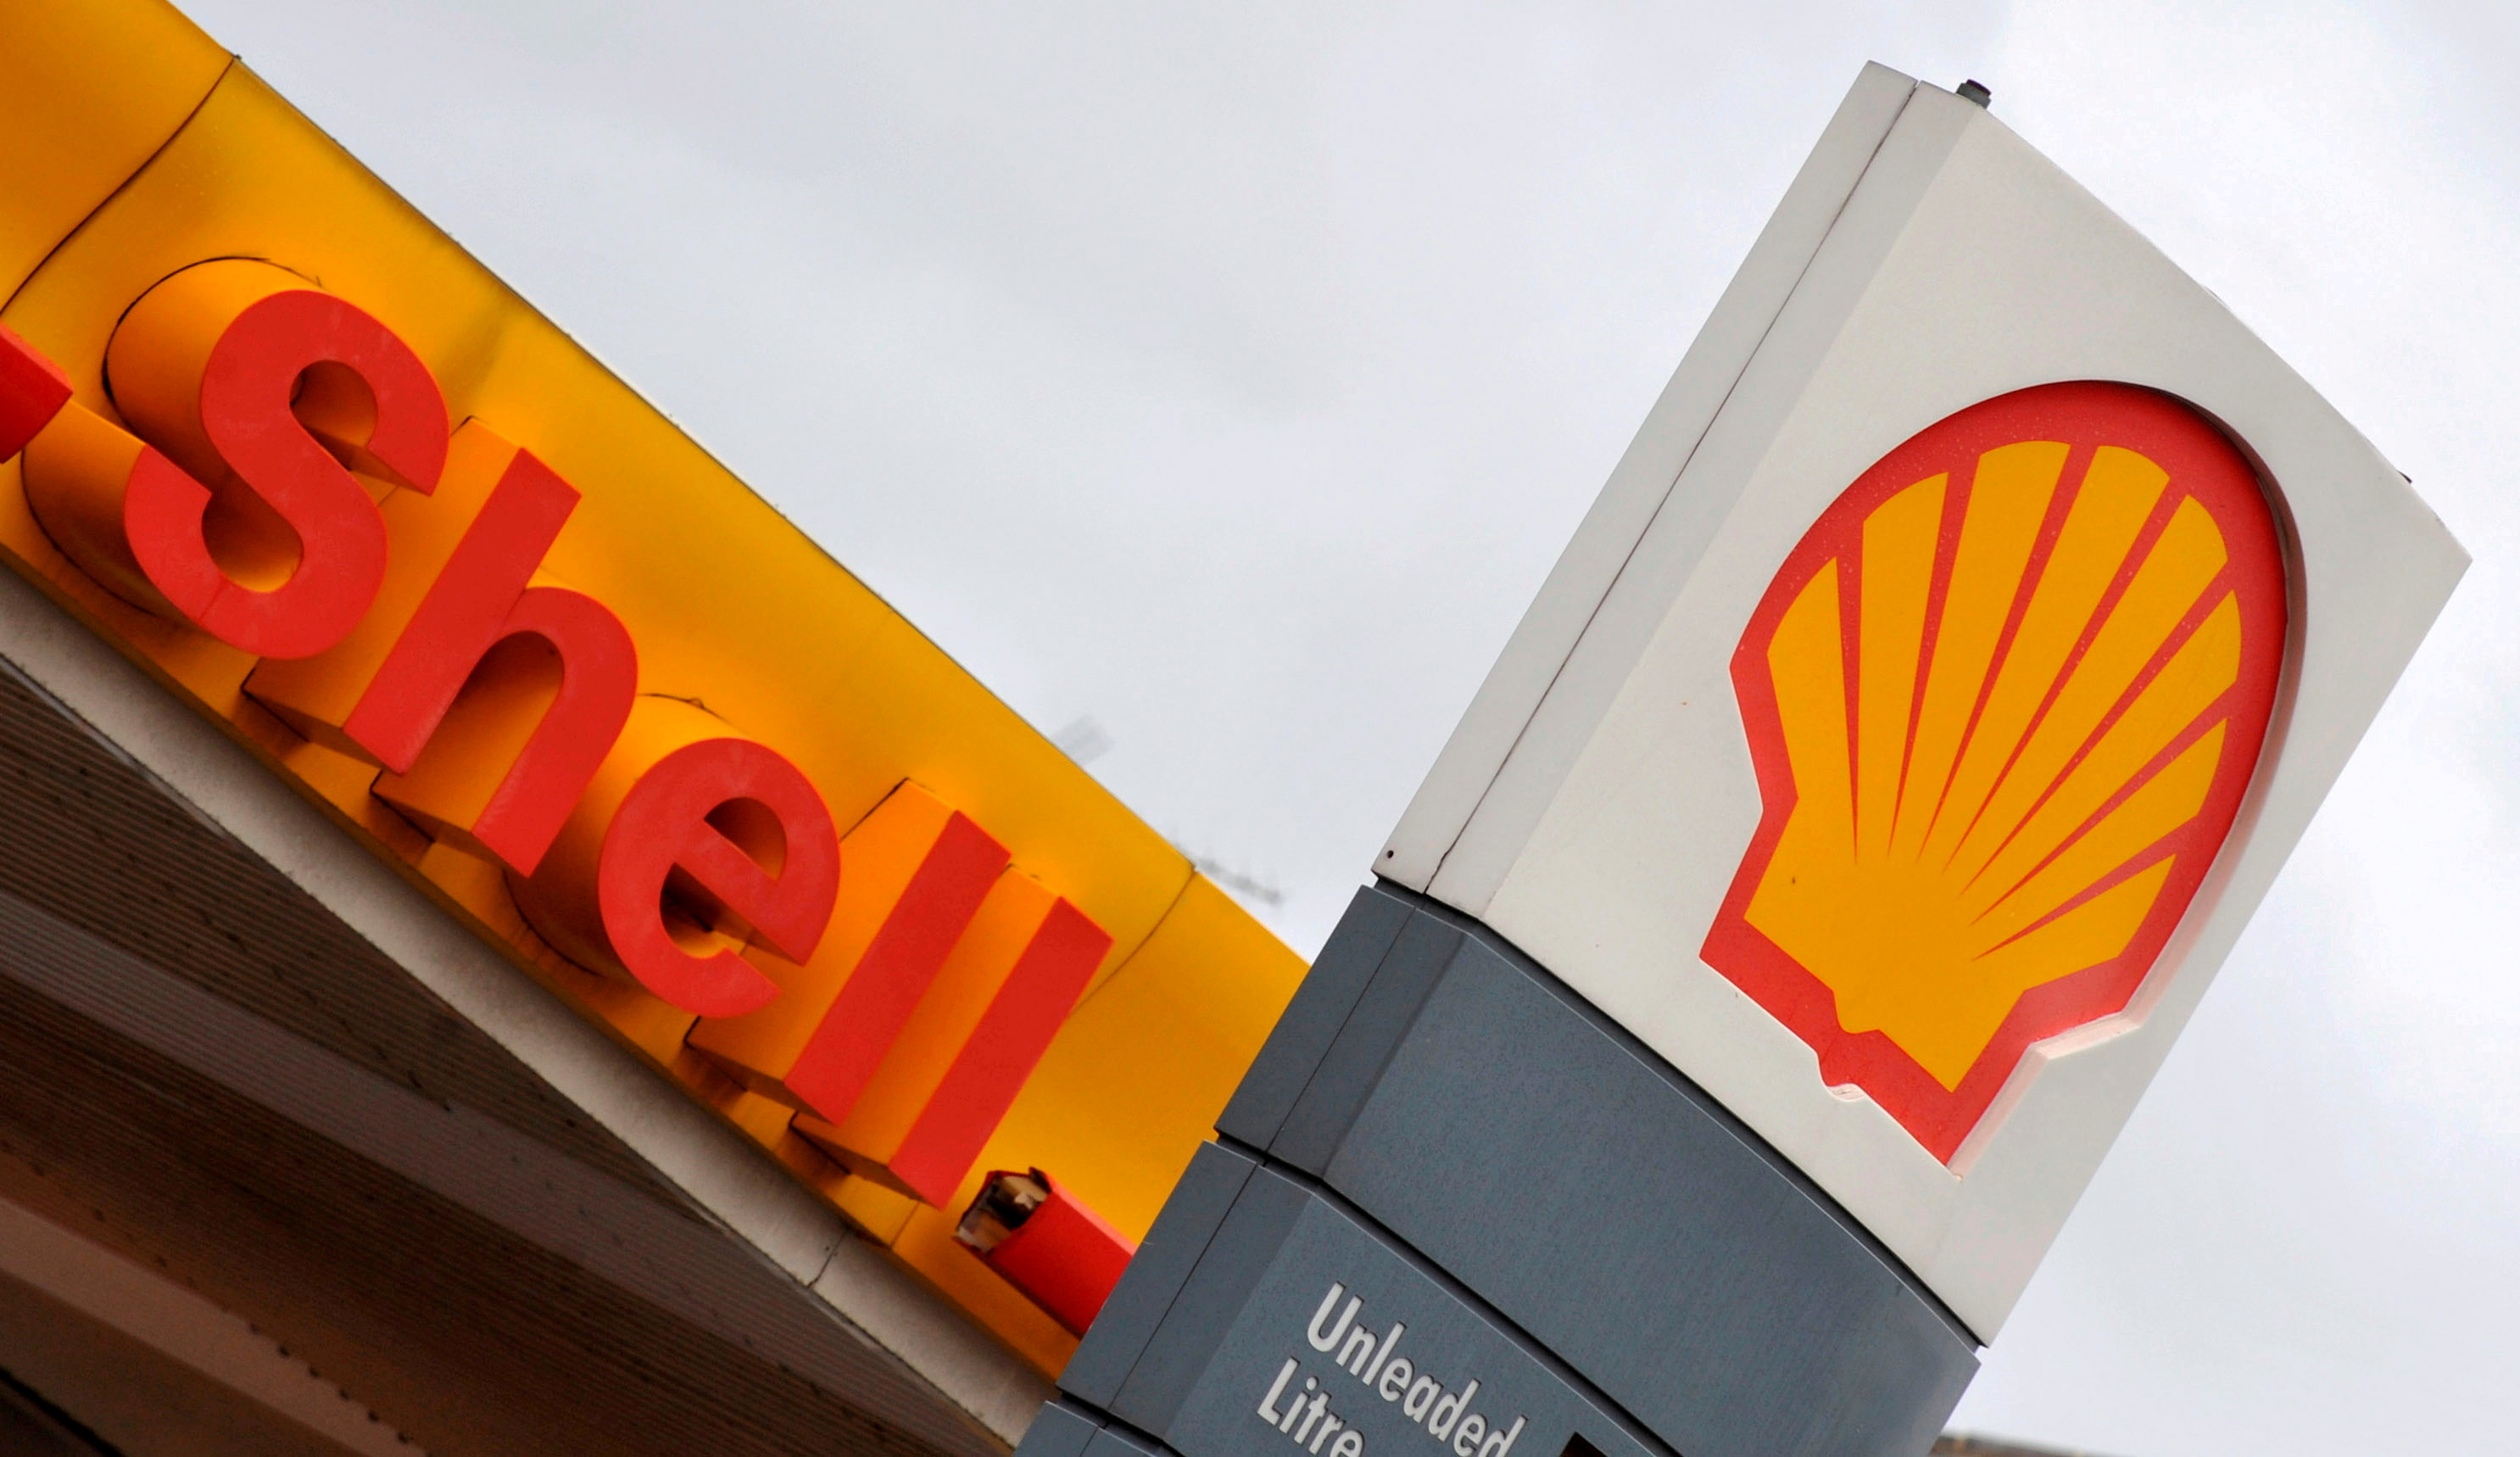 The Royal Dutch Shell logo is seen at a Shell petrol station in London, January 31, 2008. REUTERS/Toby Melville/File Photo